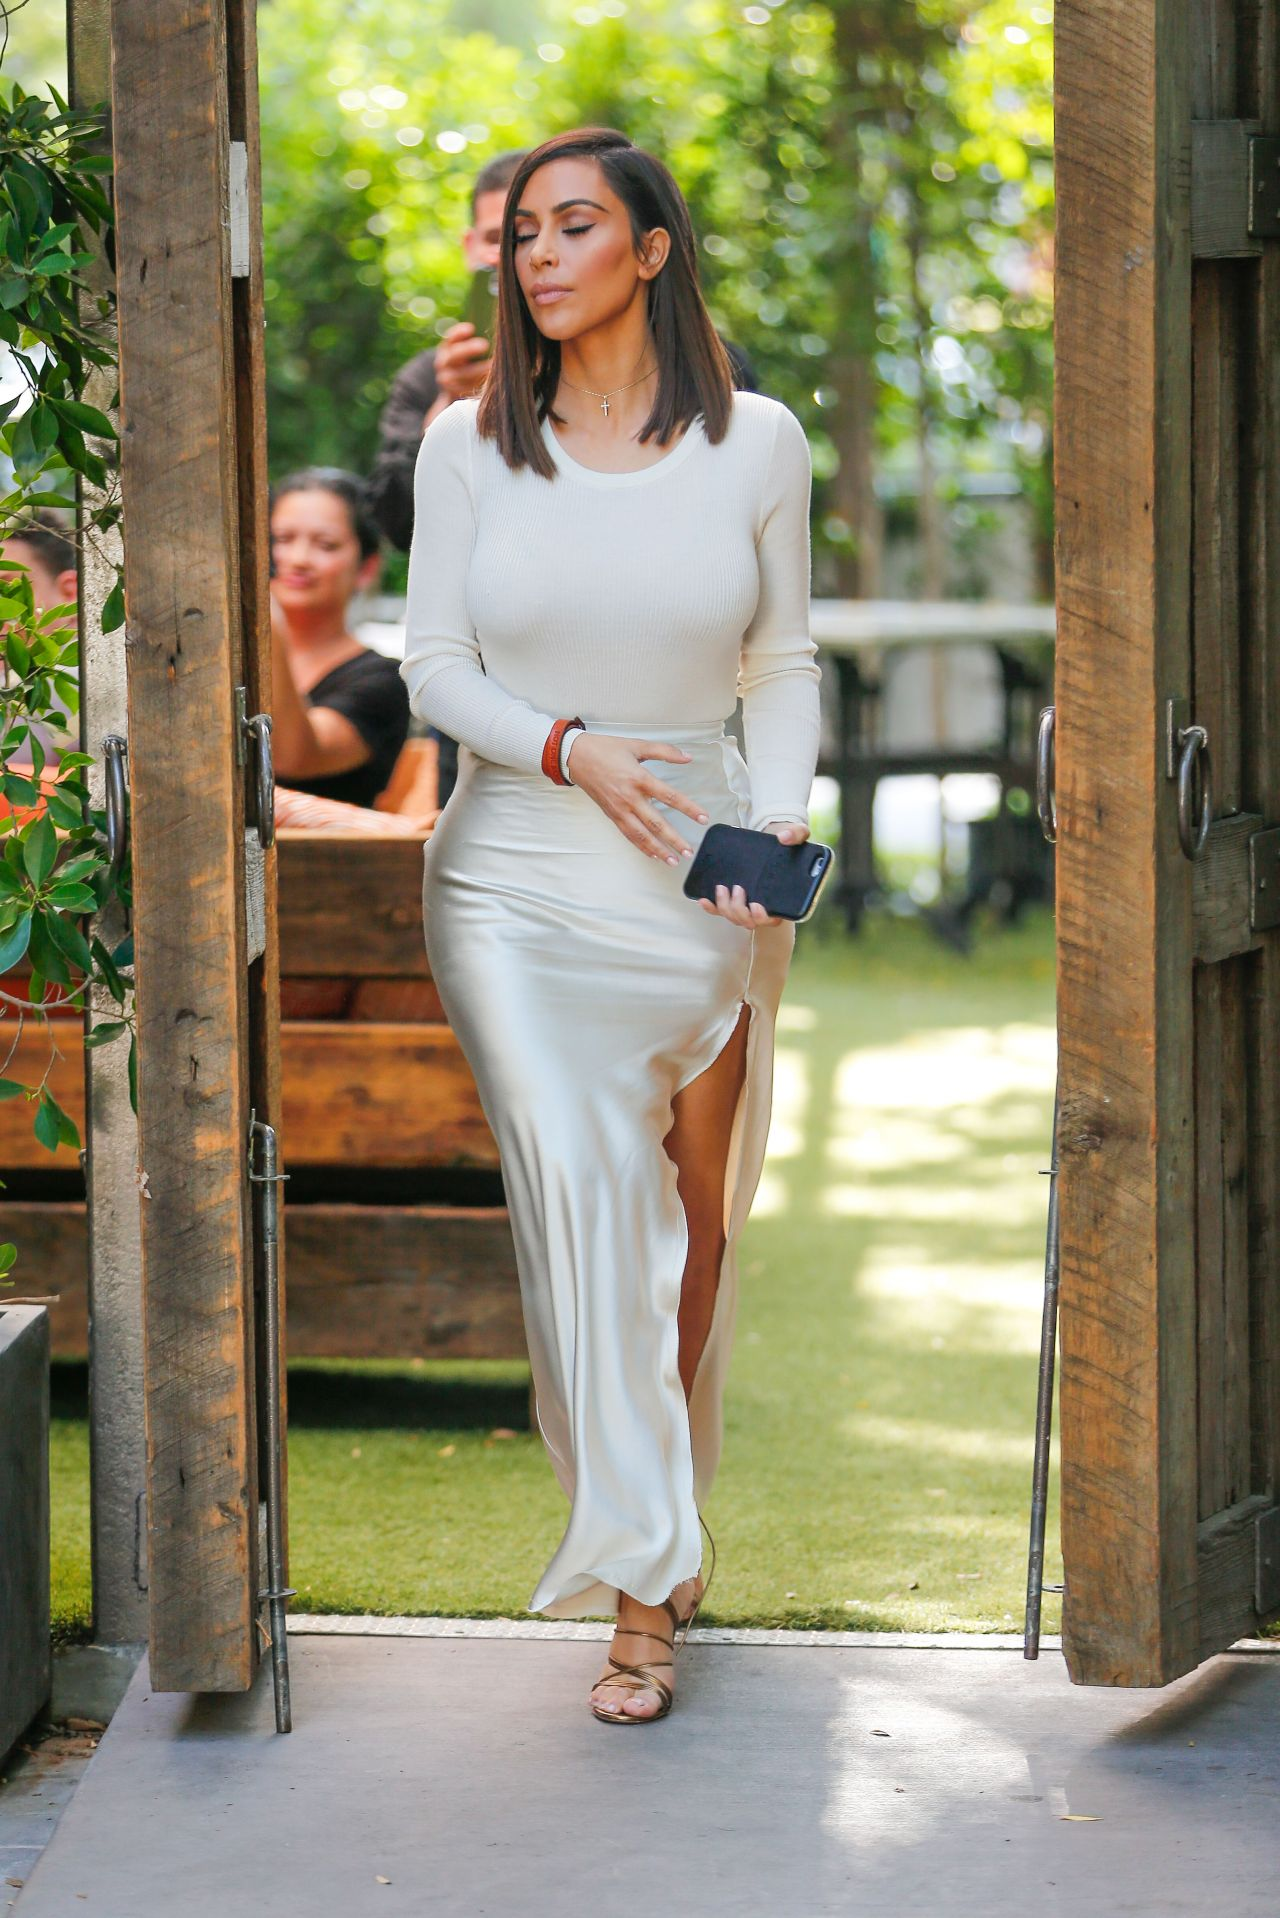 Kim Kardashian Classy Fashion At The Villa Restaurant In